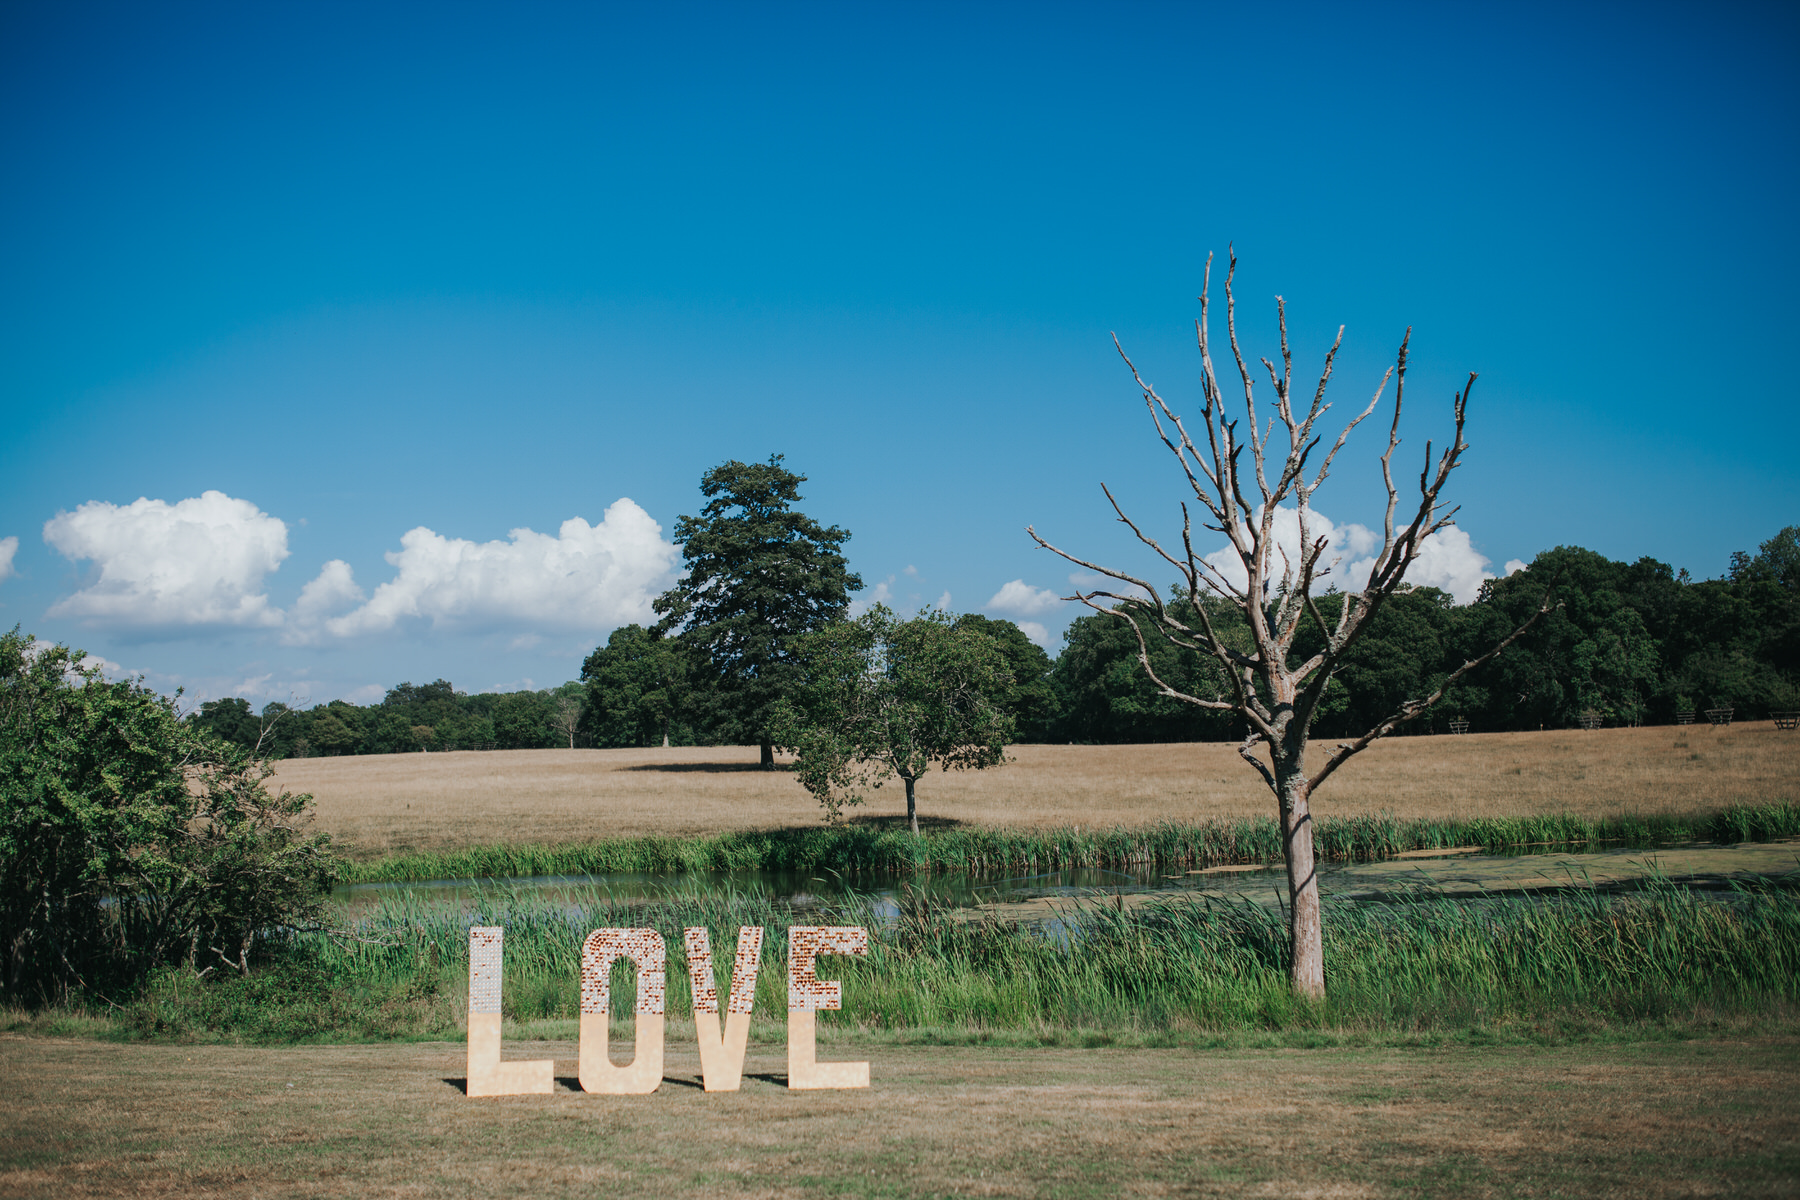 120-Knepp Castle Love sign Yolande De Vries Photography.jpg